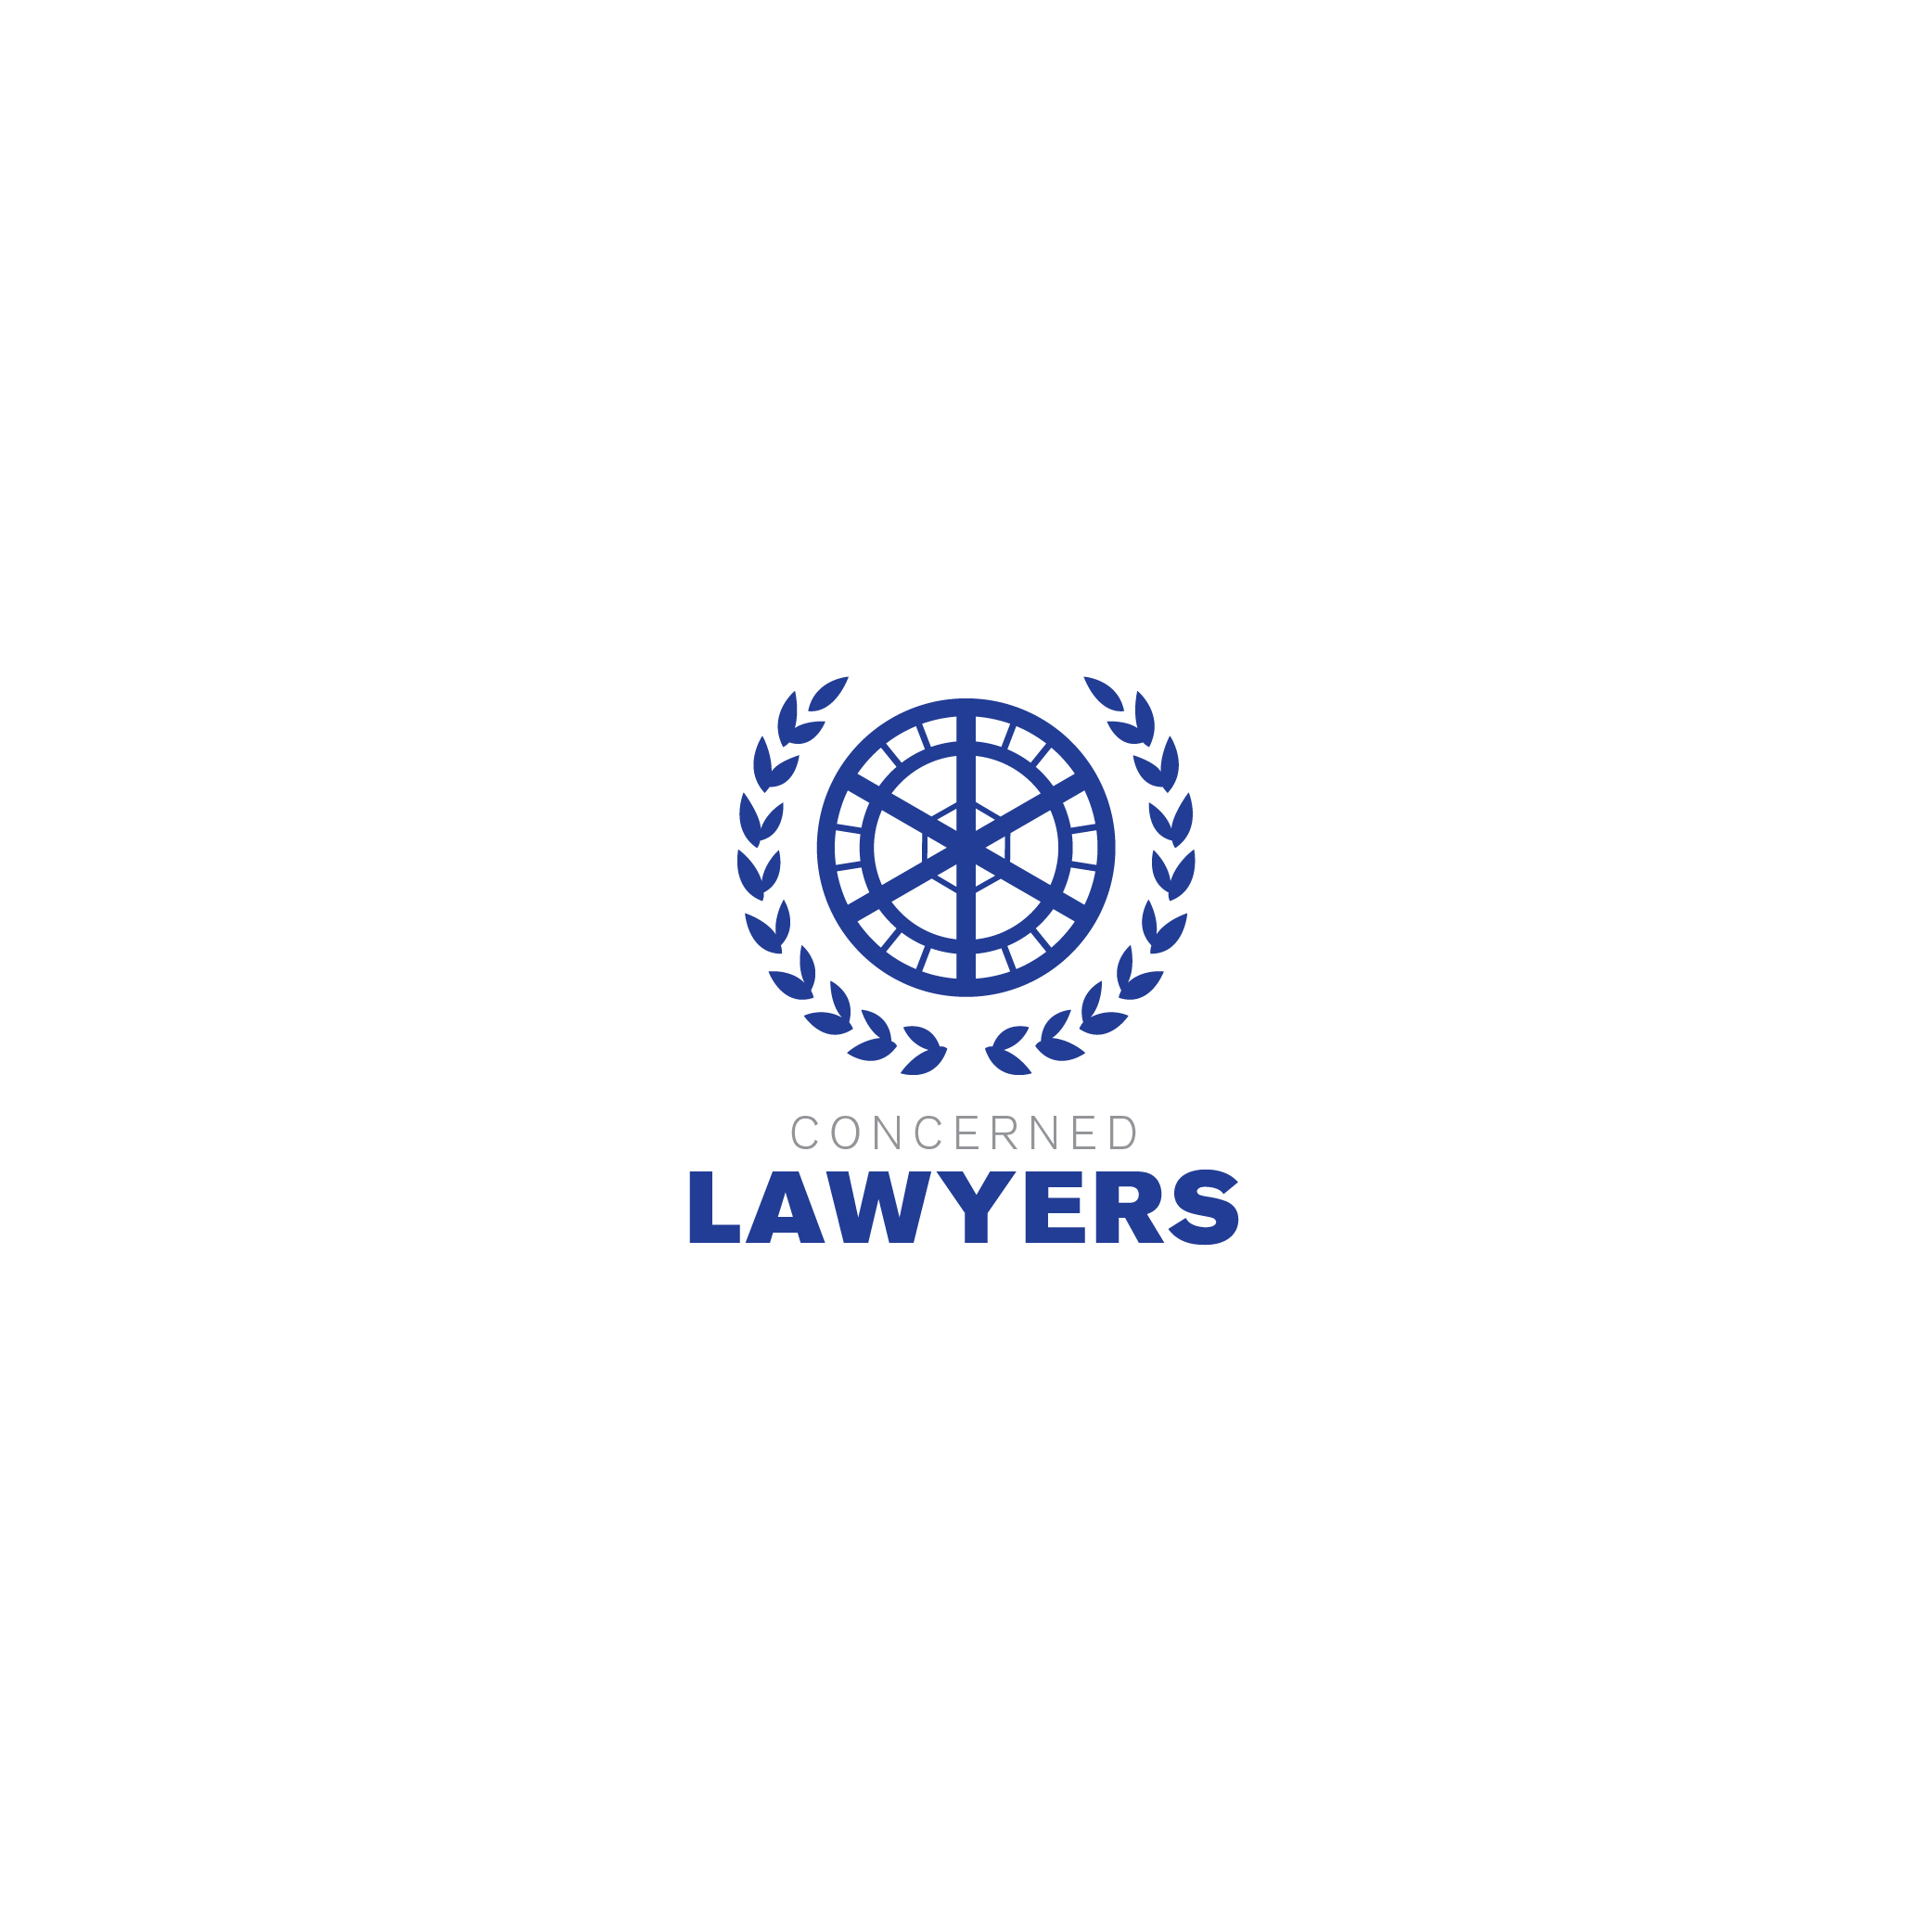 Concerned Lawyers